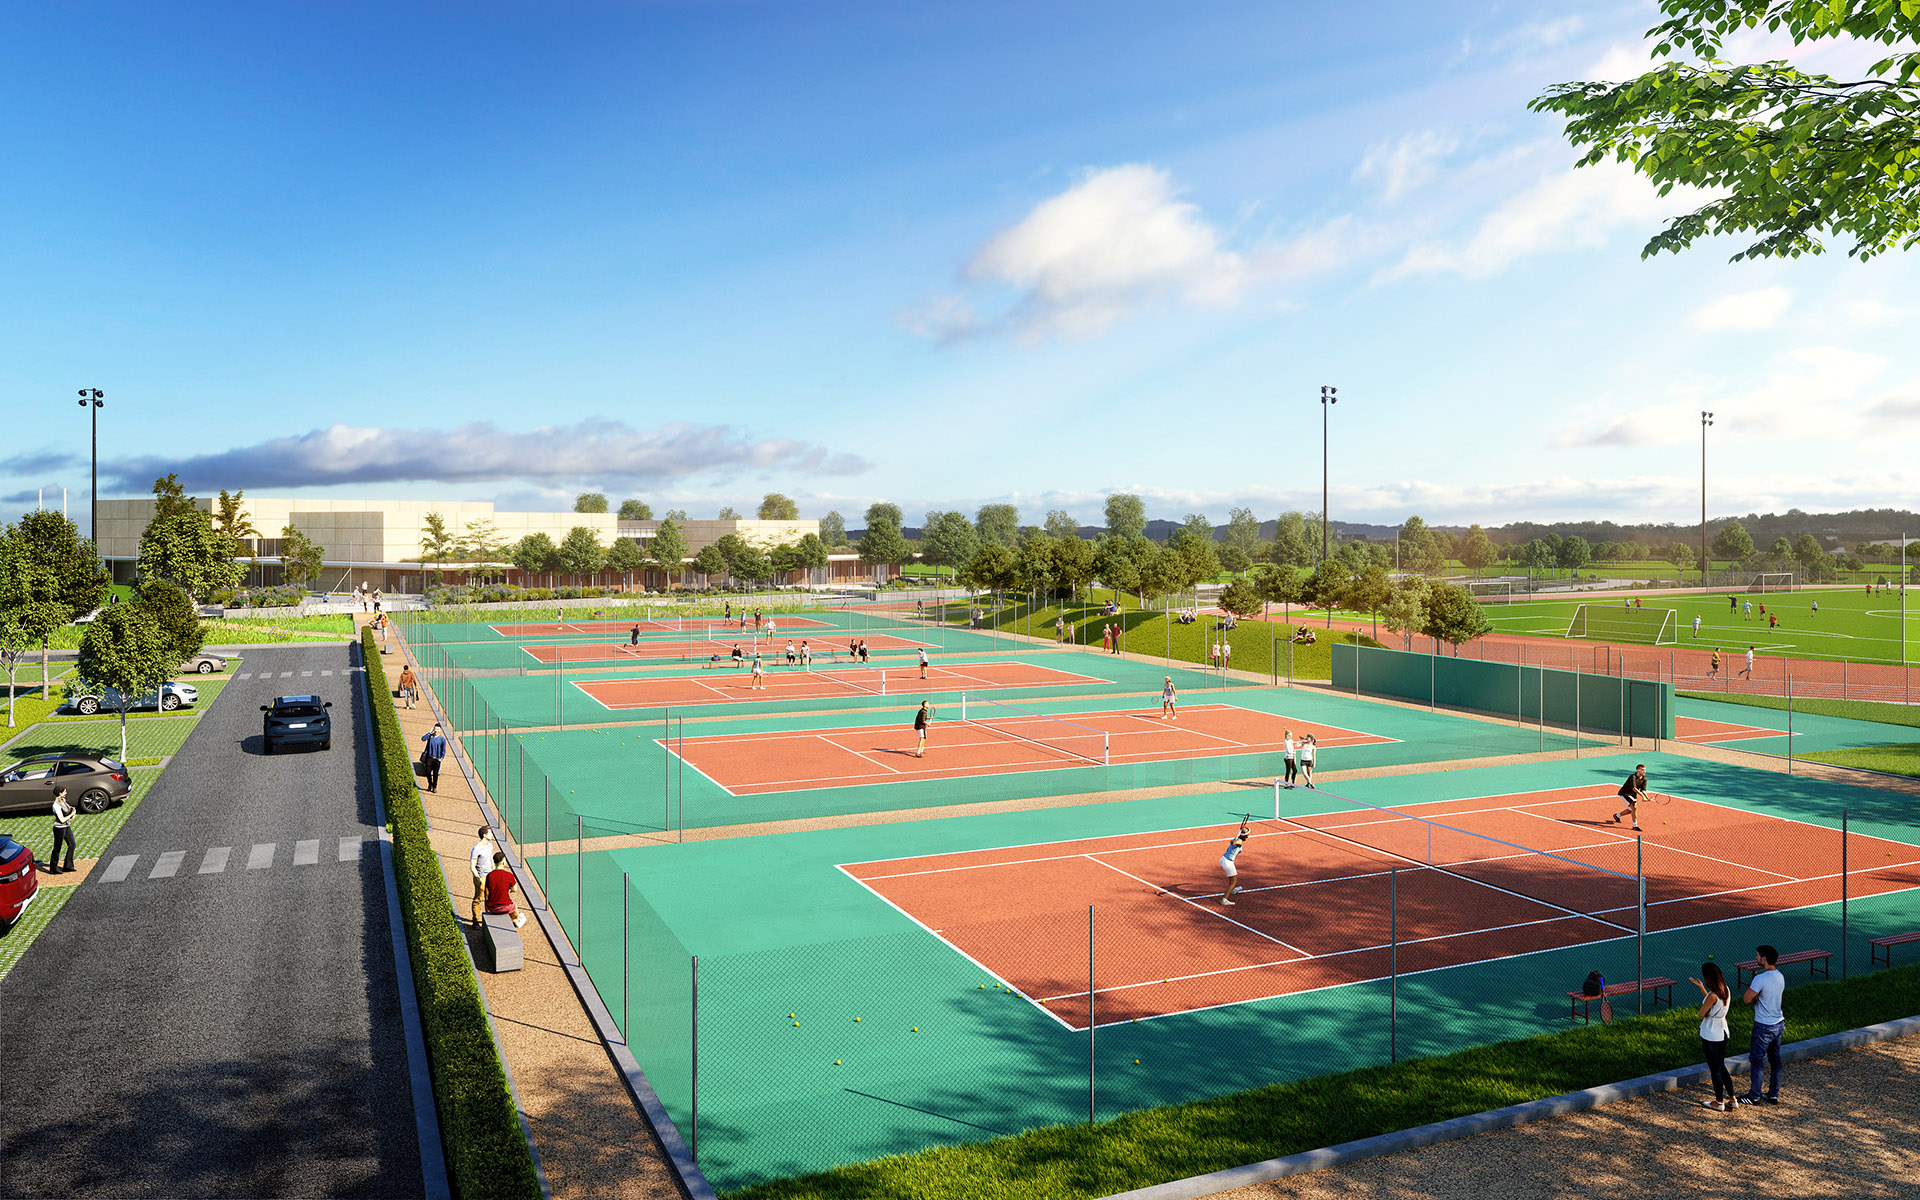 3D rendering of outdoor tennis courts, integrated in the environment